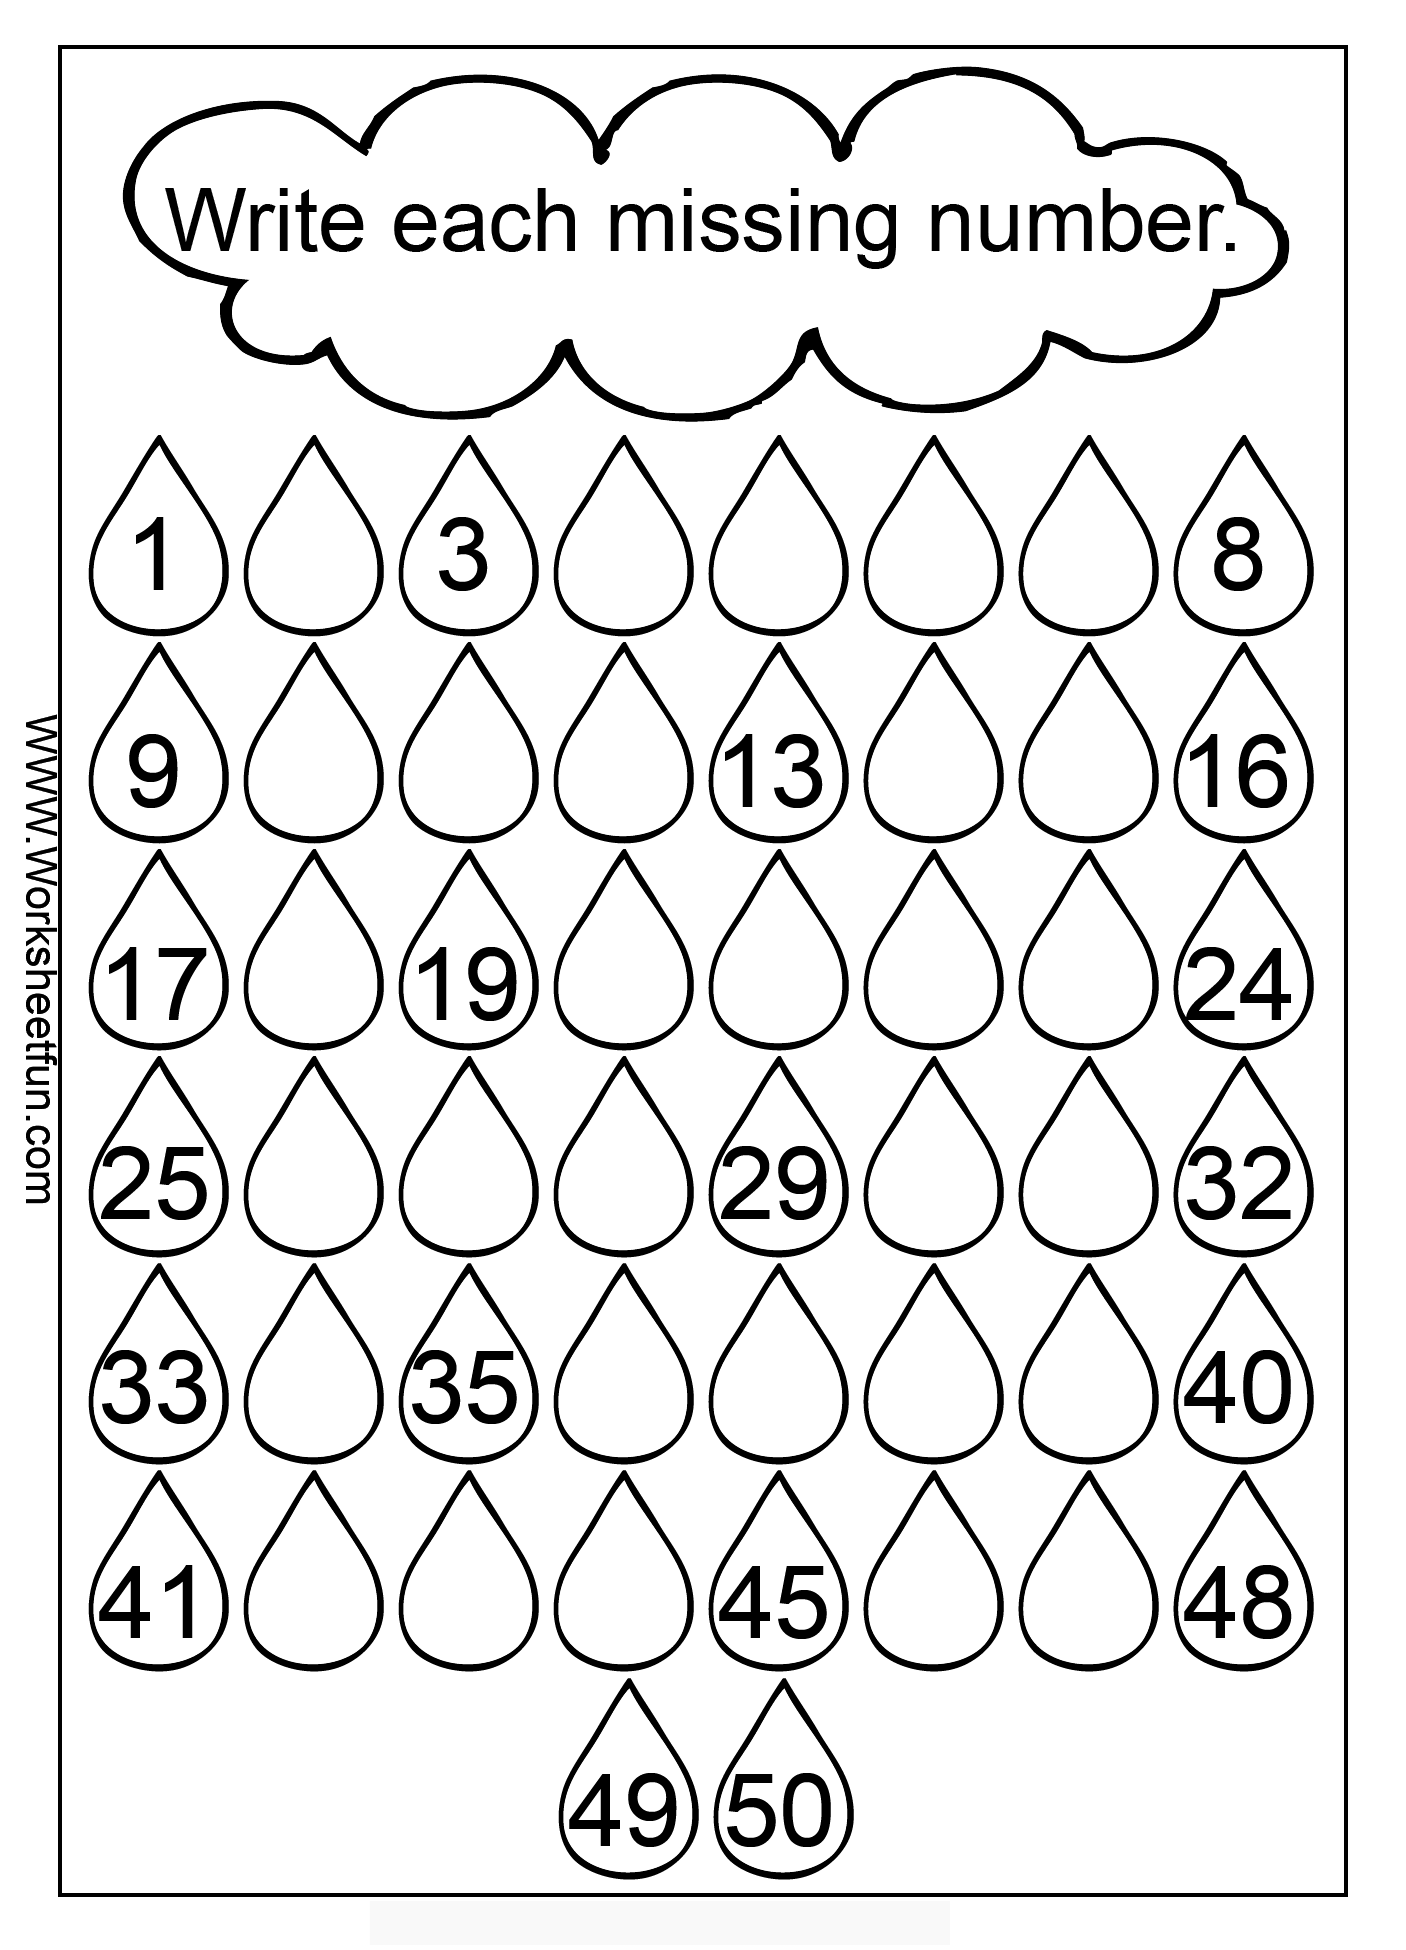 Fill in the missing numbers worksheet school mathematics missing numbers three worksheets free printable worksheets robcynllc Images